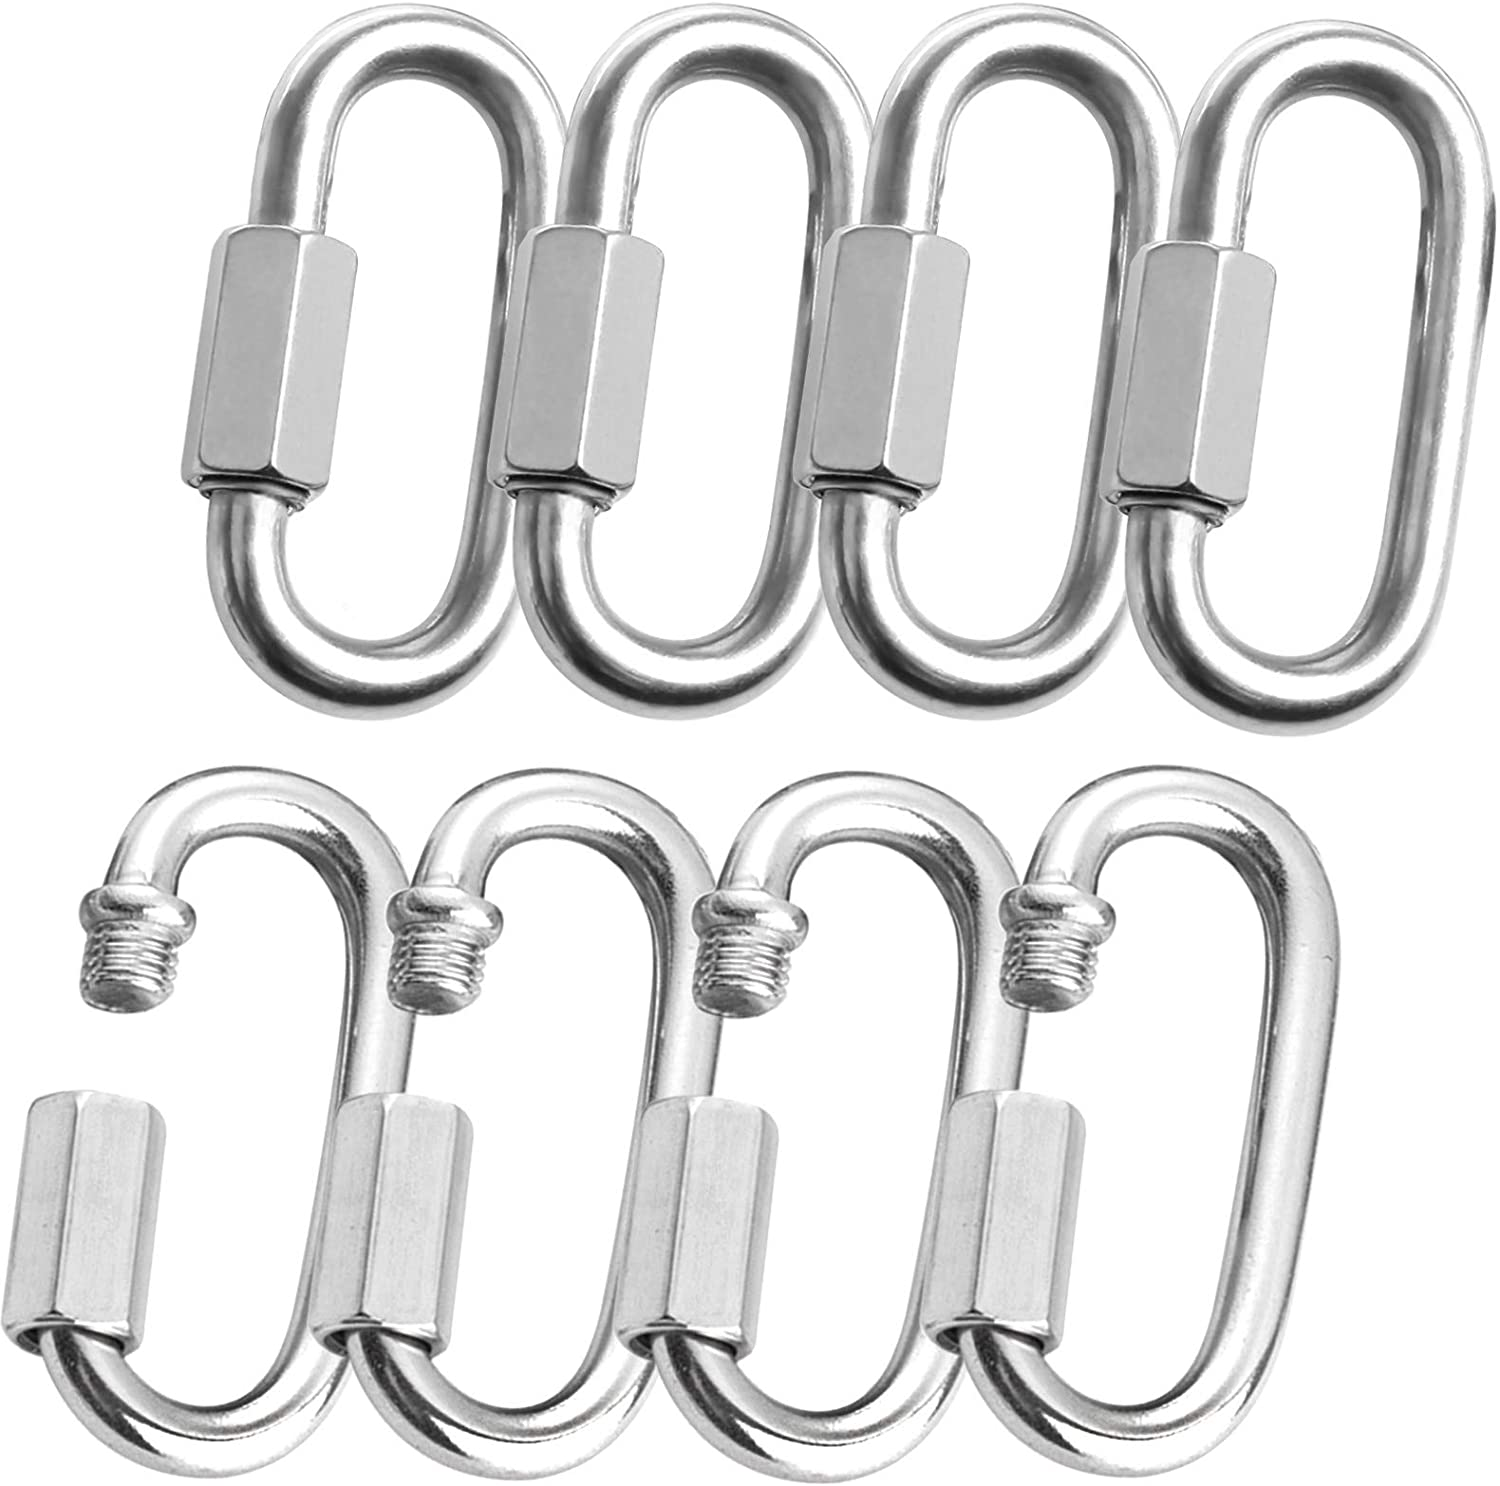 6mm Stainless Steel Oval Quick 8pcs Link Max 64% OFF STARVAST Animer and price revision Carabiner M6